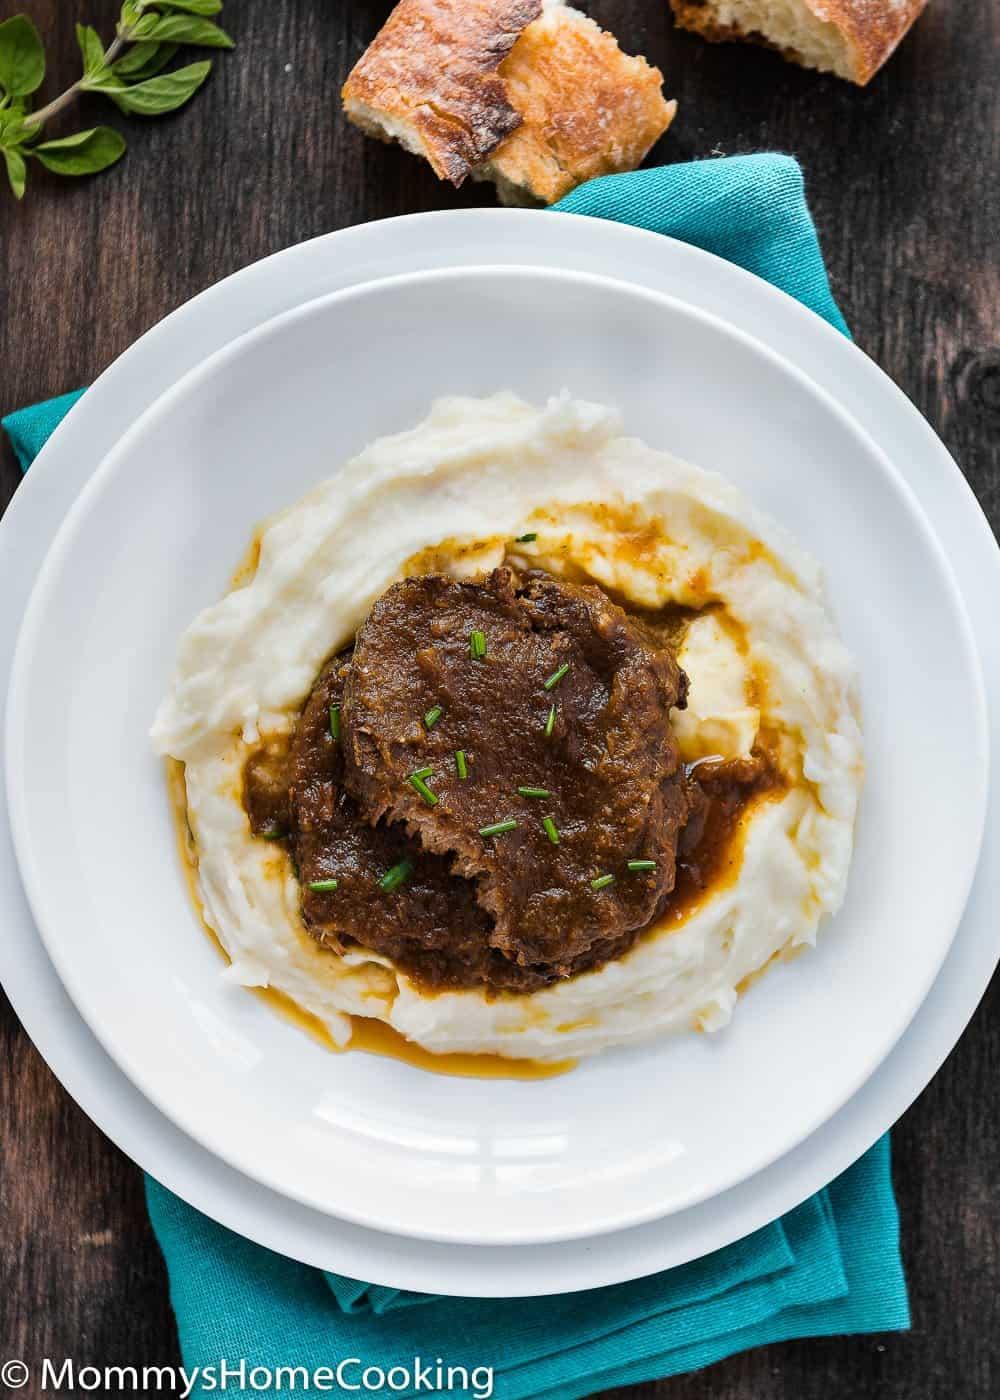 Venezuelan Asado Negro in a white plate with mashed potatoes and sauce